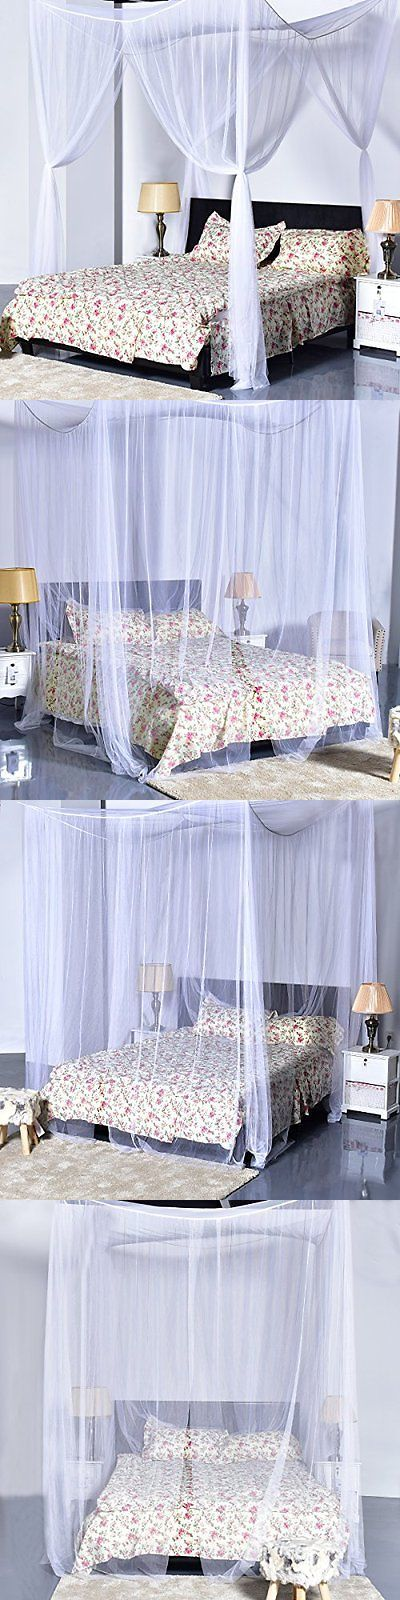 Canopies and Netting 48090: Bed Canopy Mosquito Net Square King Queen Size Corner Post White Netting Bedding -> BUY IT NOW ONLY: $32.49 on eBay!